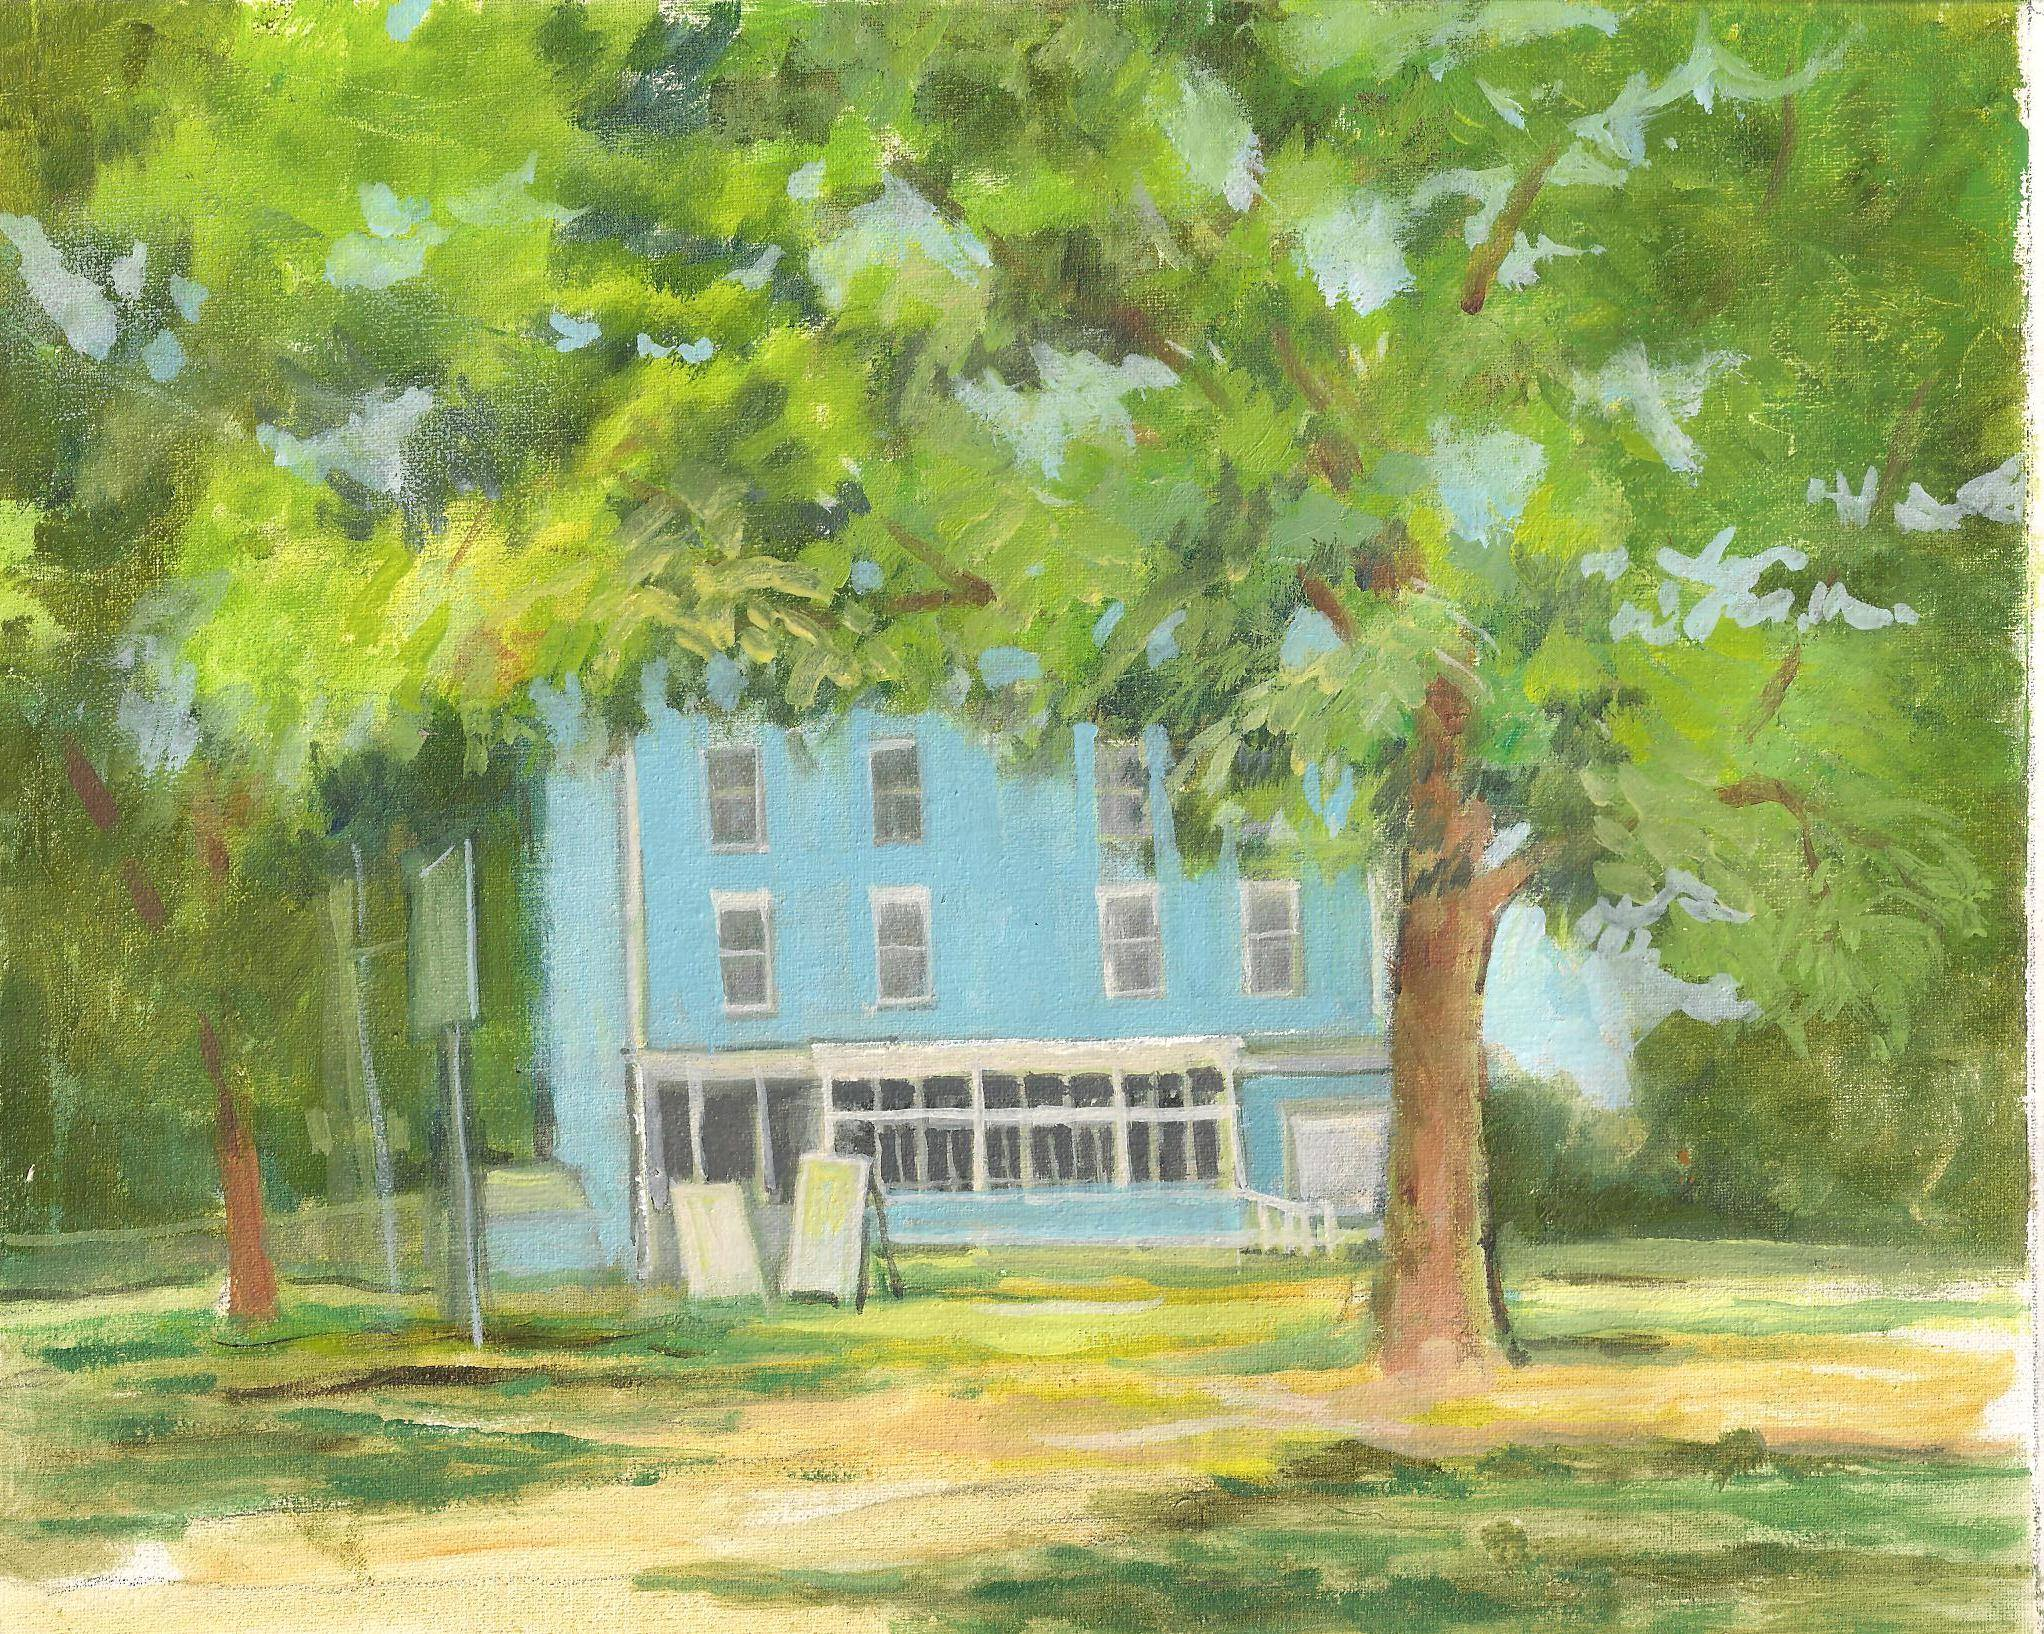 (Painting of the Harvard General Store by Judy Warner)